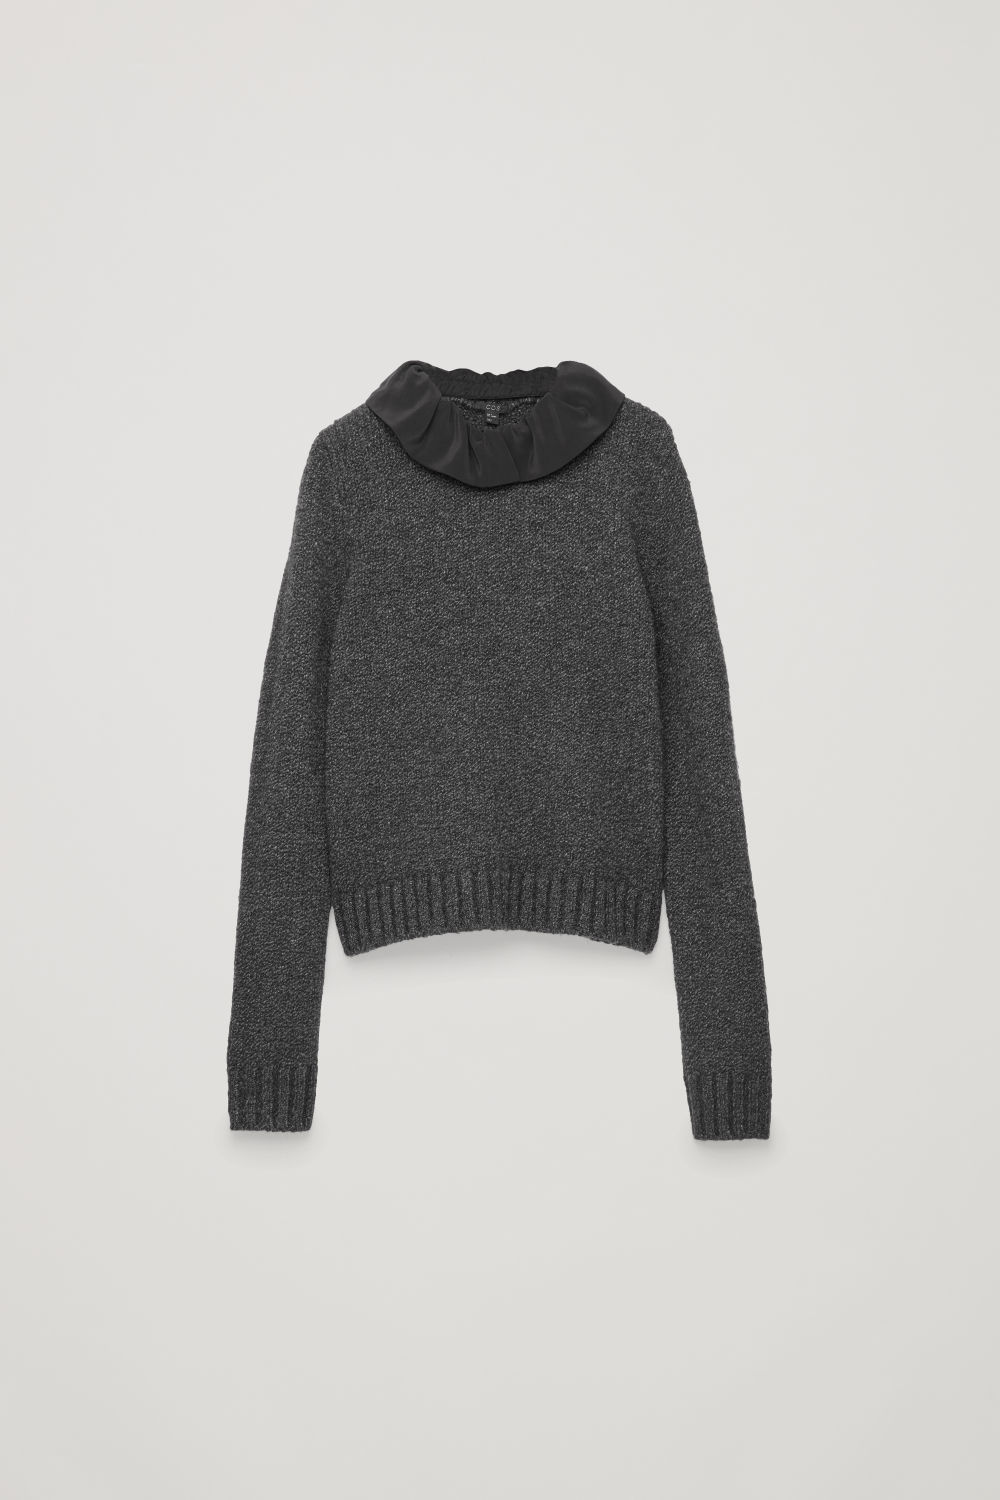 REMOVABLE-COLLAR WOOL JUMPER